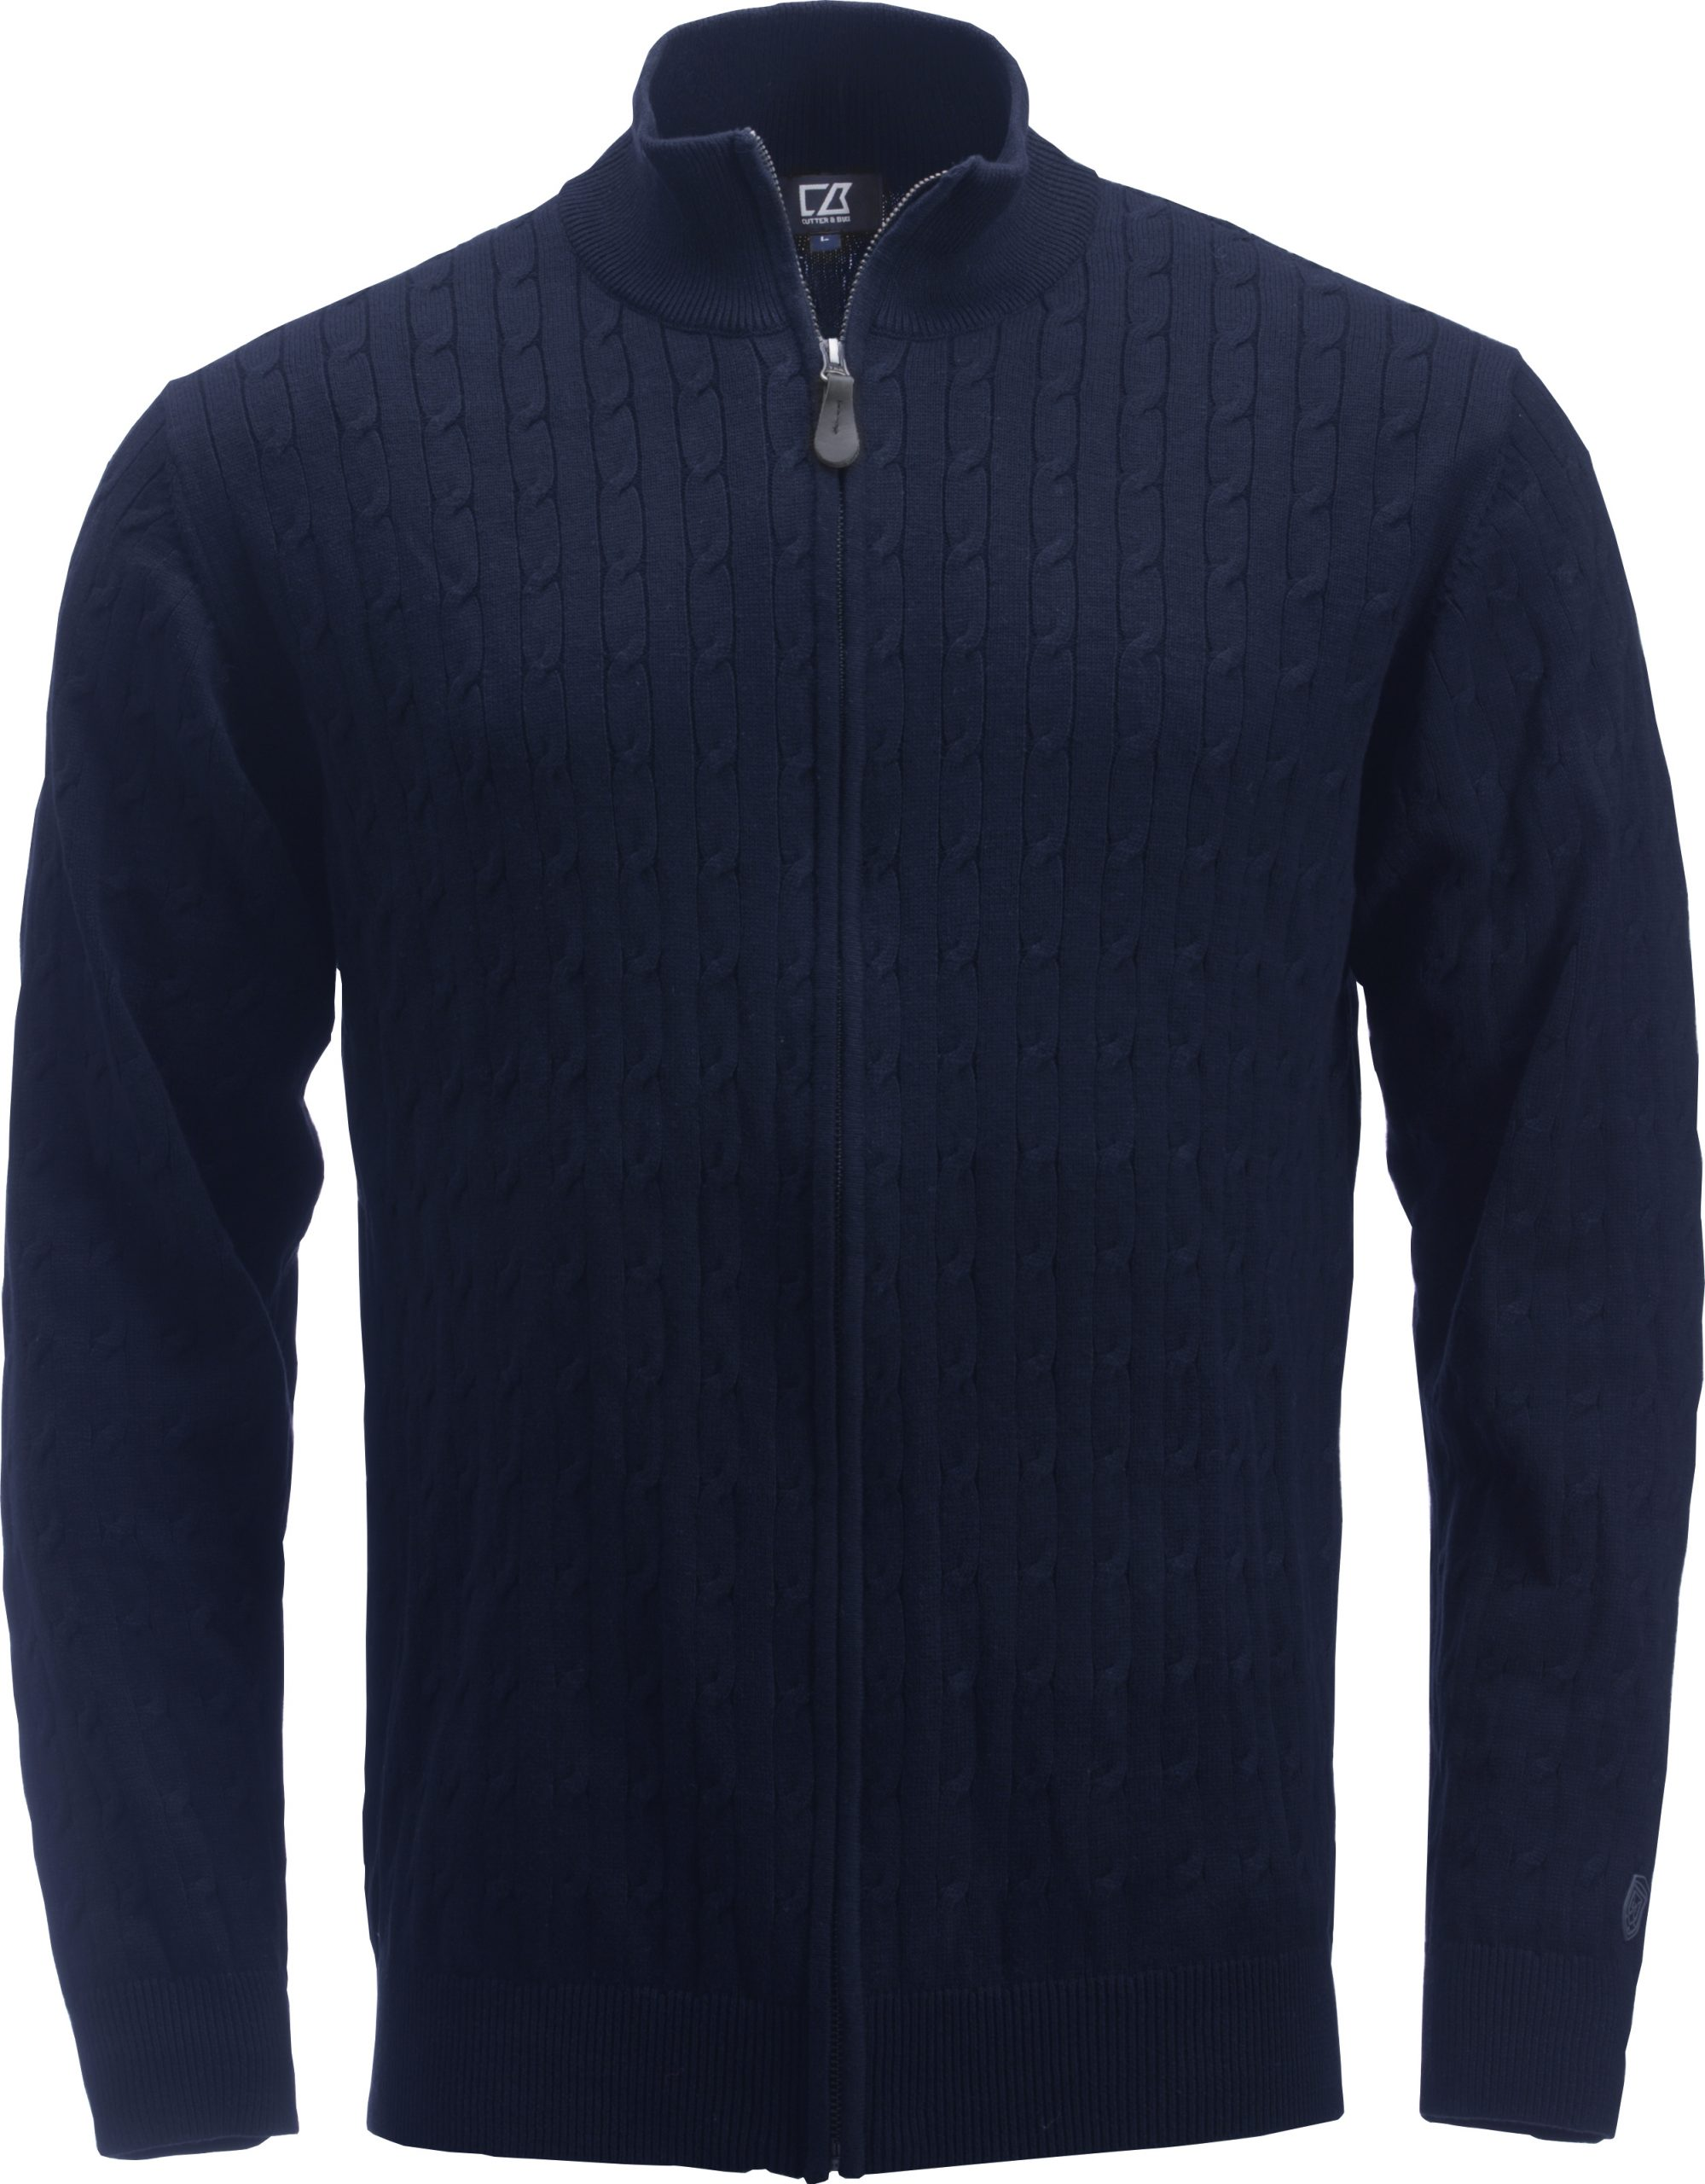 Cutterandbuck Blakely Knitted Full Zip Syvänsininen